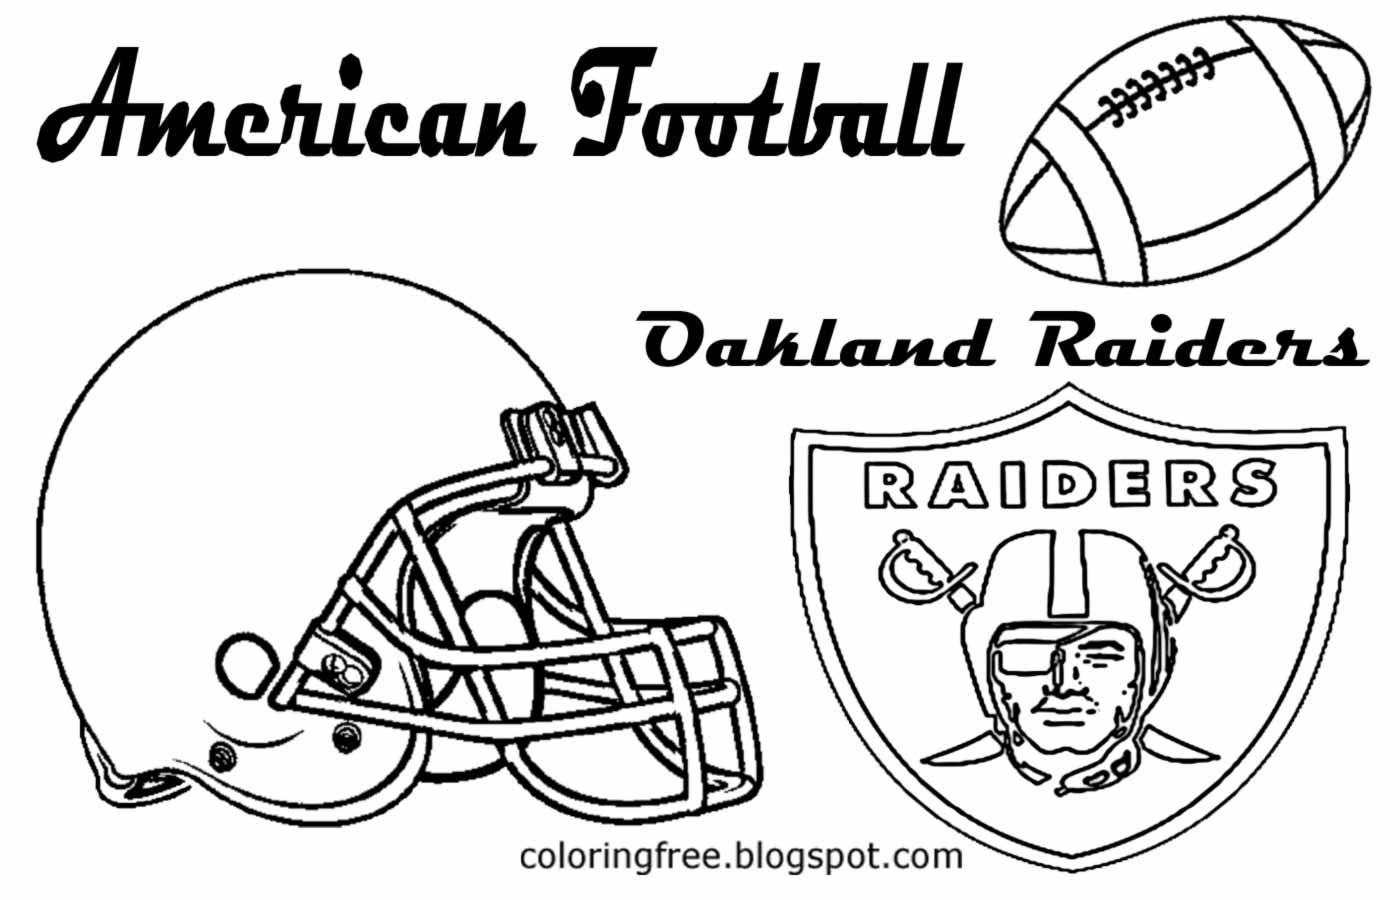 oakland raiders coloring pages oakland raiders coloring pages at getdrawings free download coloring raiders oakland pages